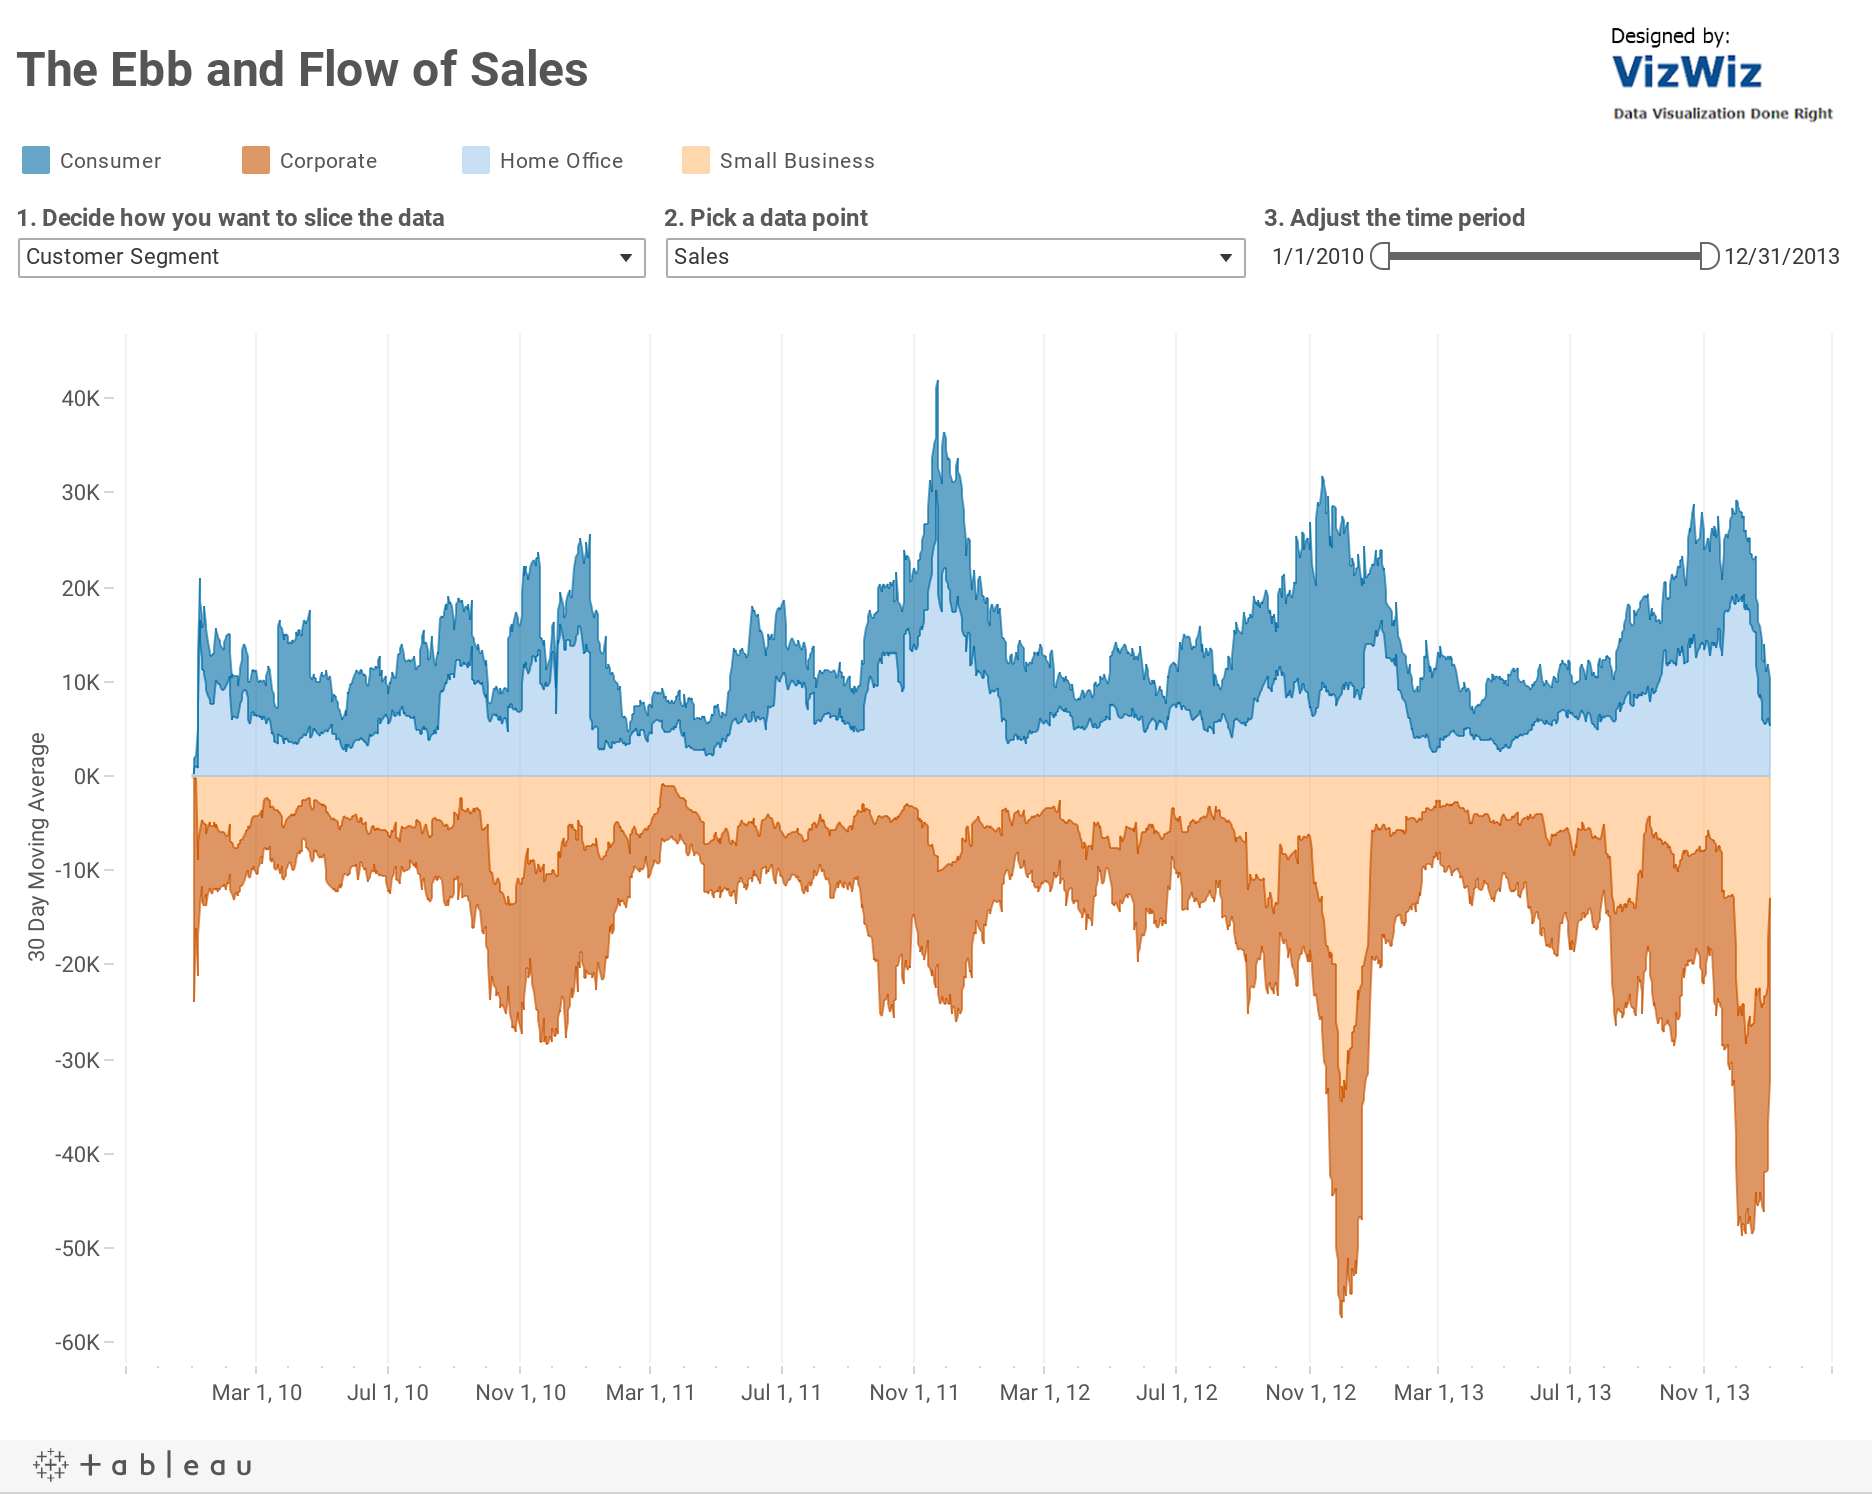 How did Sales flow in 2012?7-day moving average by Customer Segment